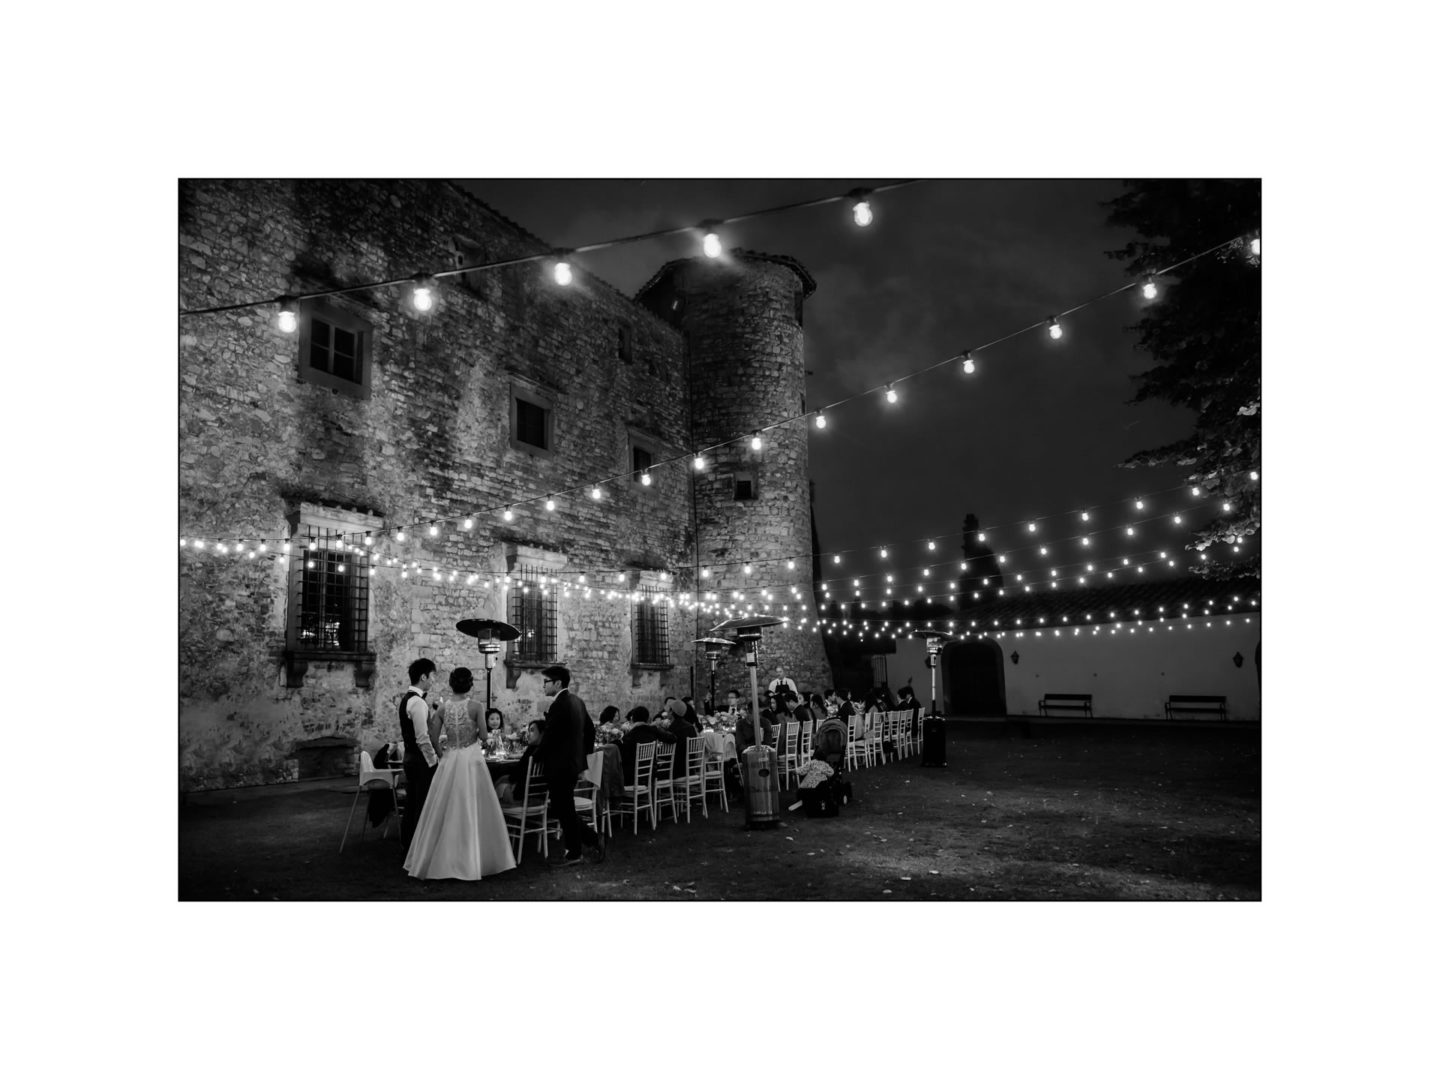 castello-di-meleto-david-bastianoni-photographer-00040 :: Black and white wedding_ Castello di Meleto :: Luxury wedding photography - 39 :: castello-di-meleto-david-bastianoni-photographer-00040